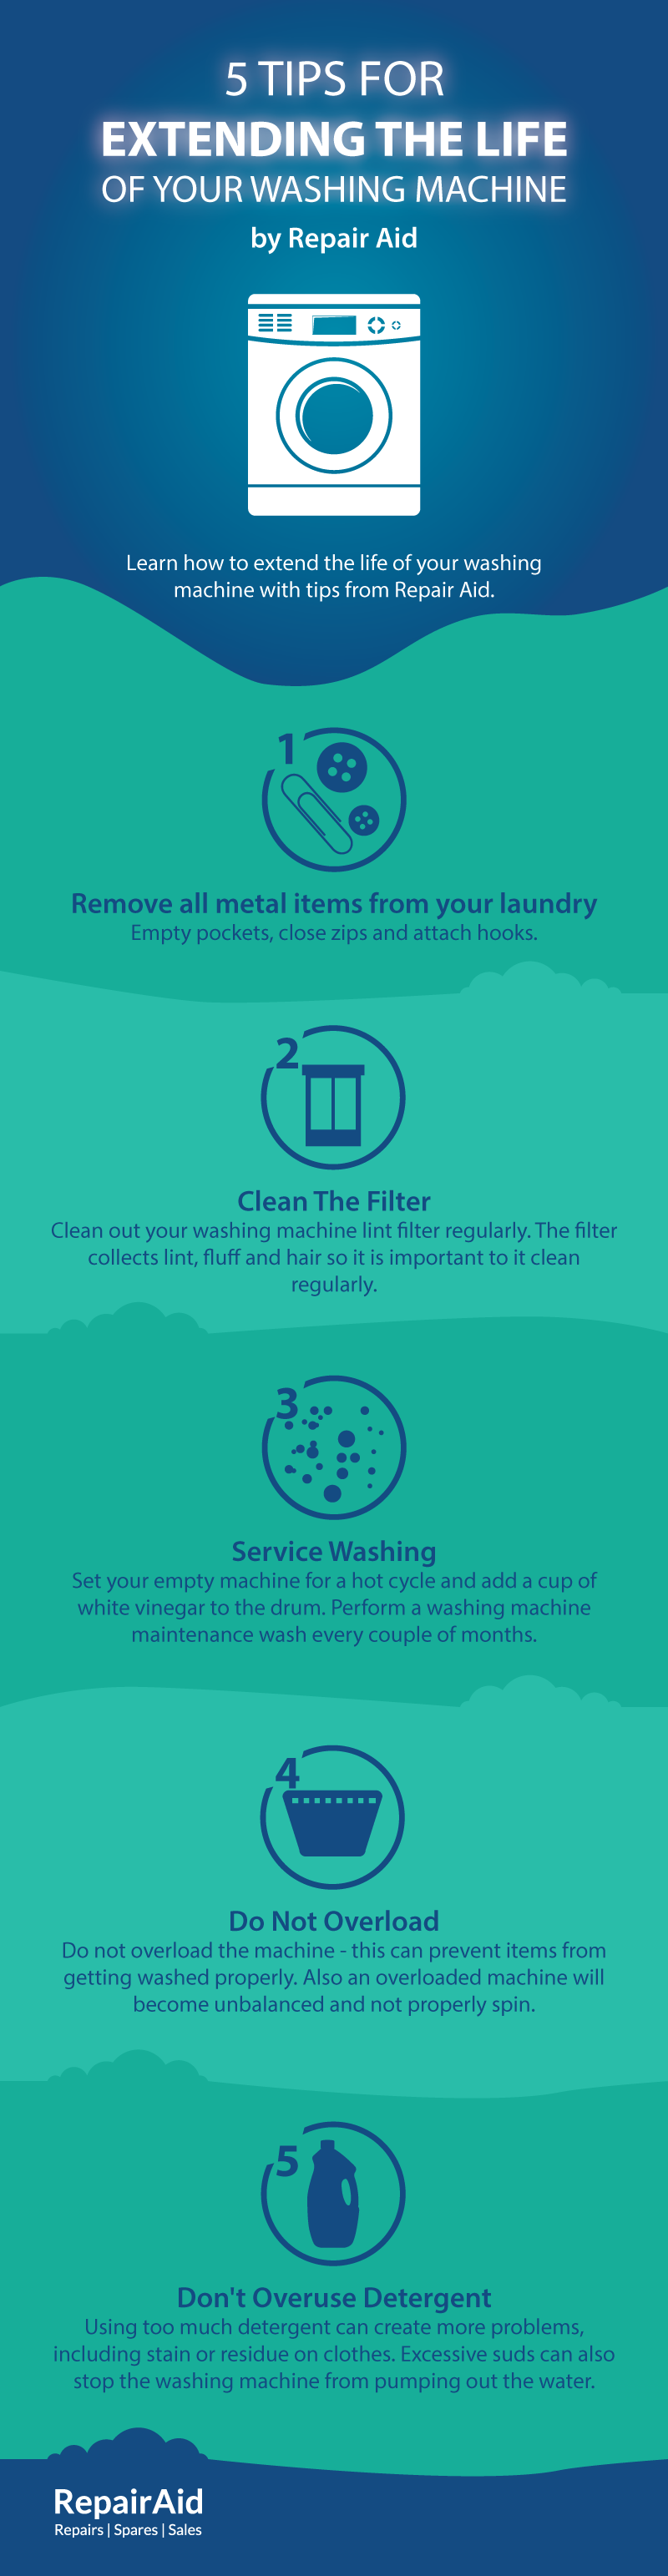 5 Tips For Extending The Life Of your Washing Machine